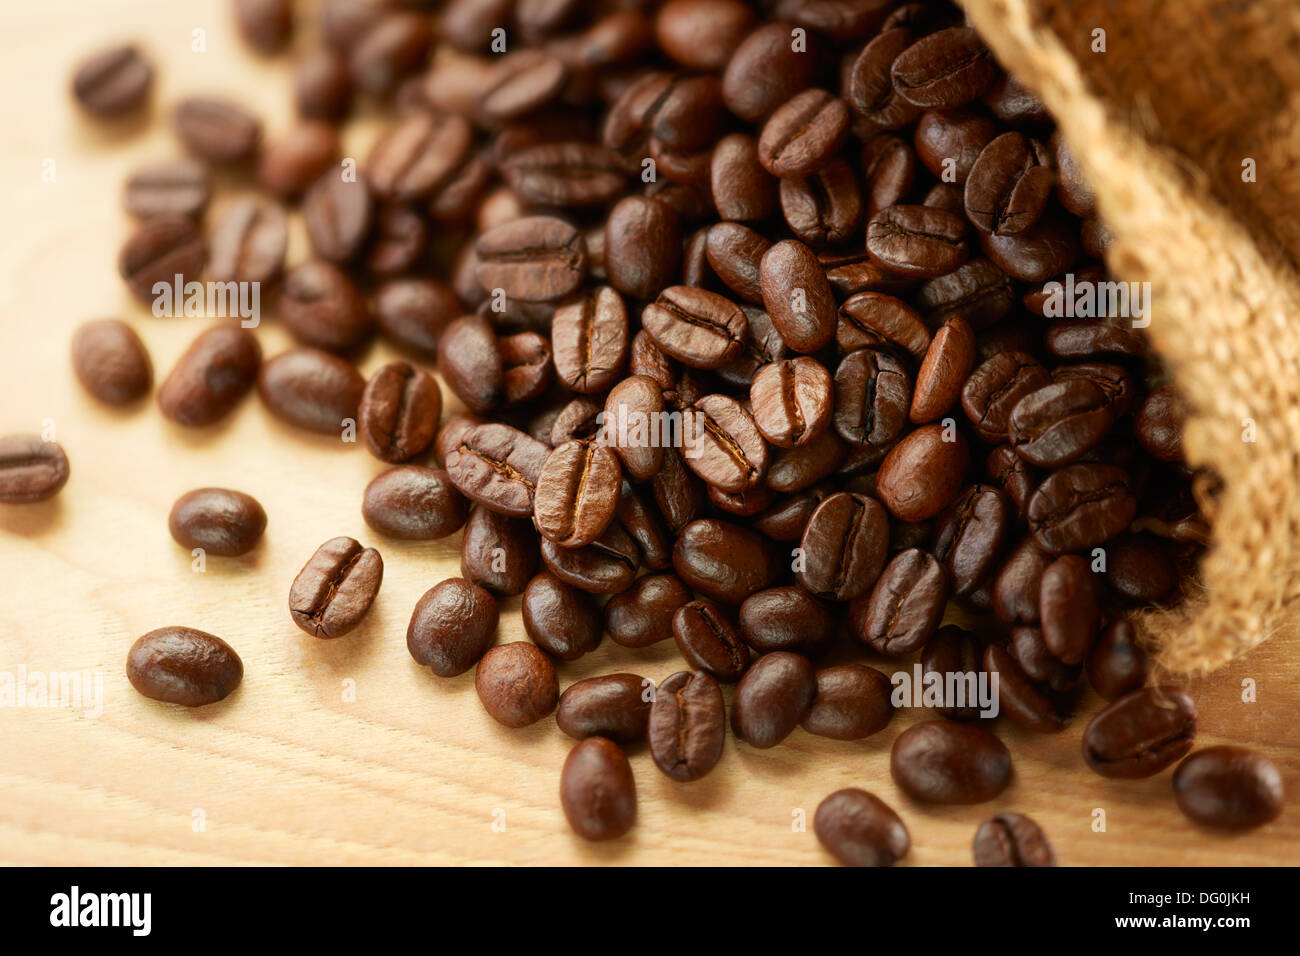 coffee beans with sack bag, shallow depth of field - Stock Image